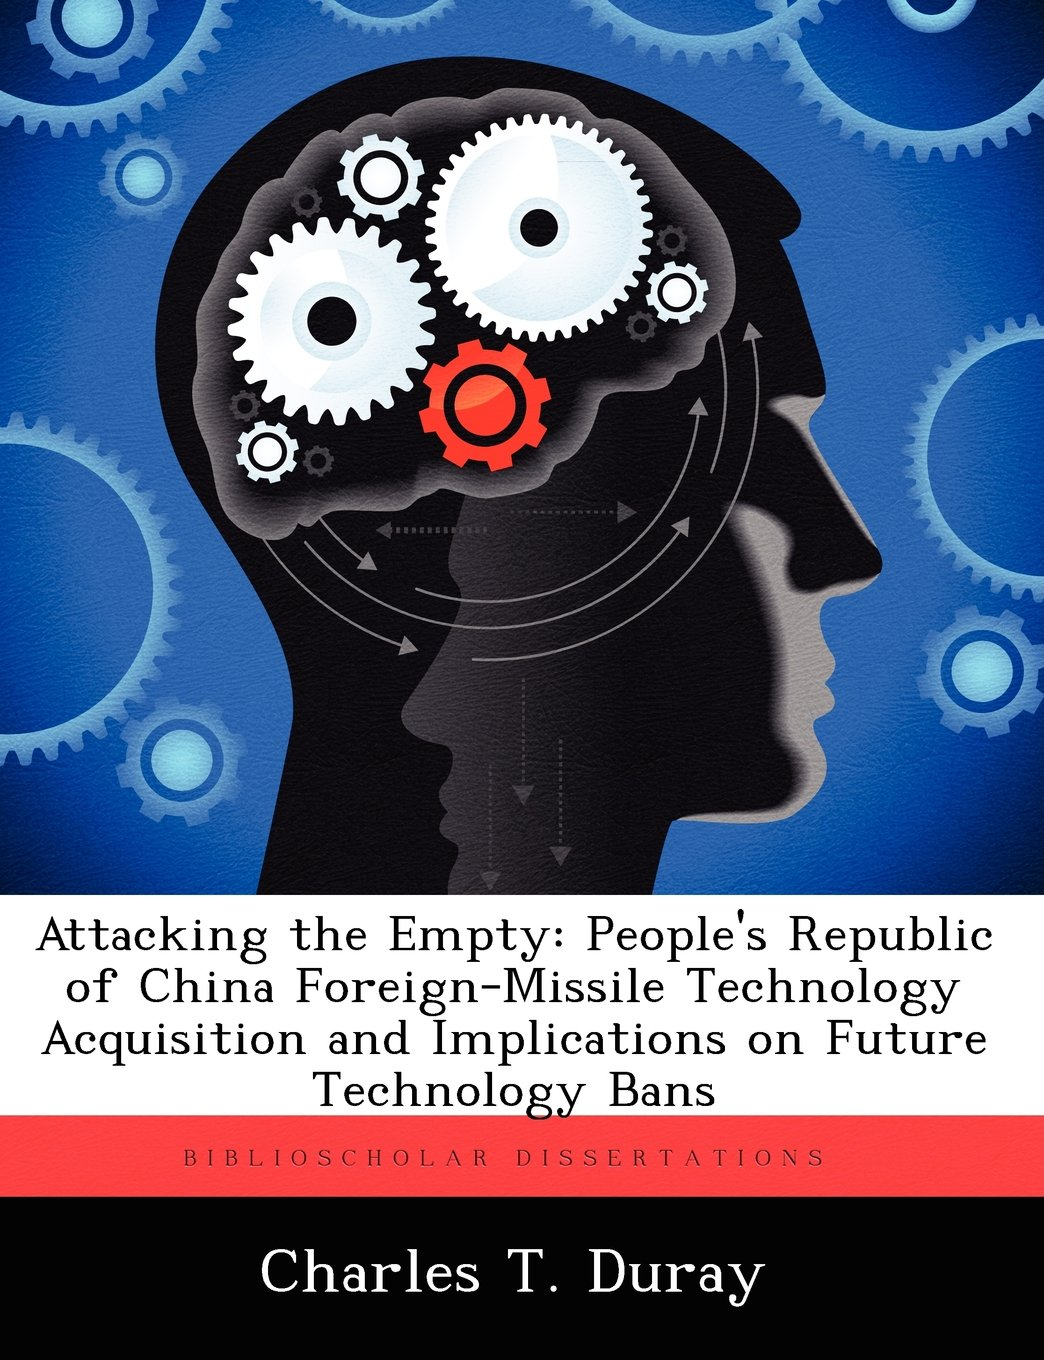 Download Attacking the Empty: People's Republic of China Foreign-Missile Technology Acquisition and Implications on Future Technology Bans pdf